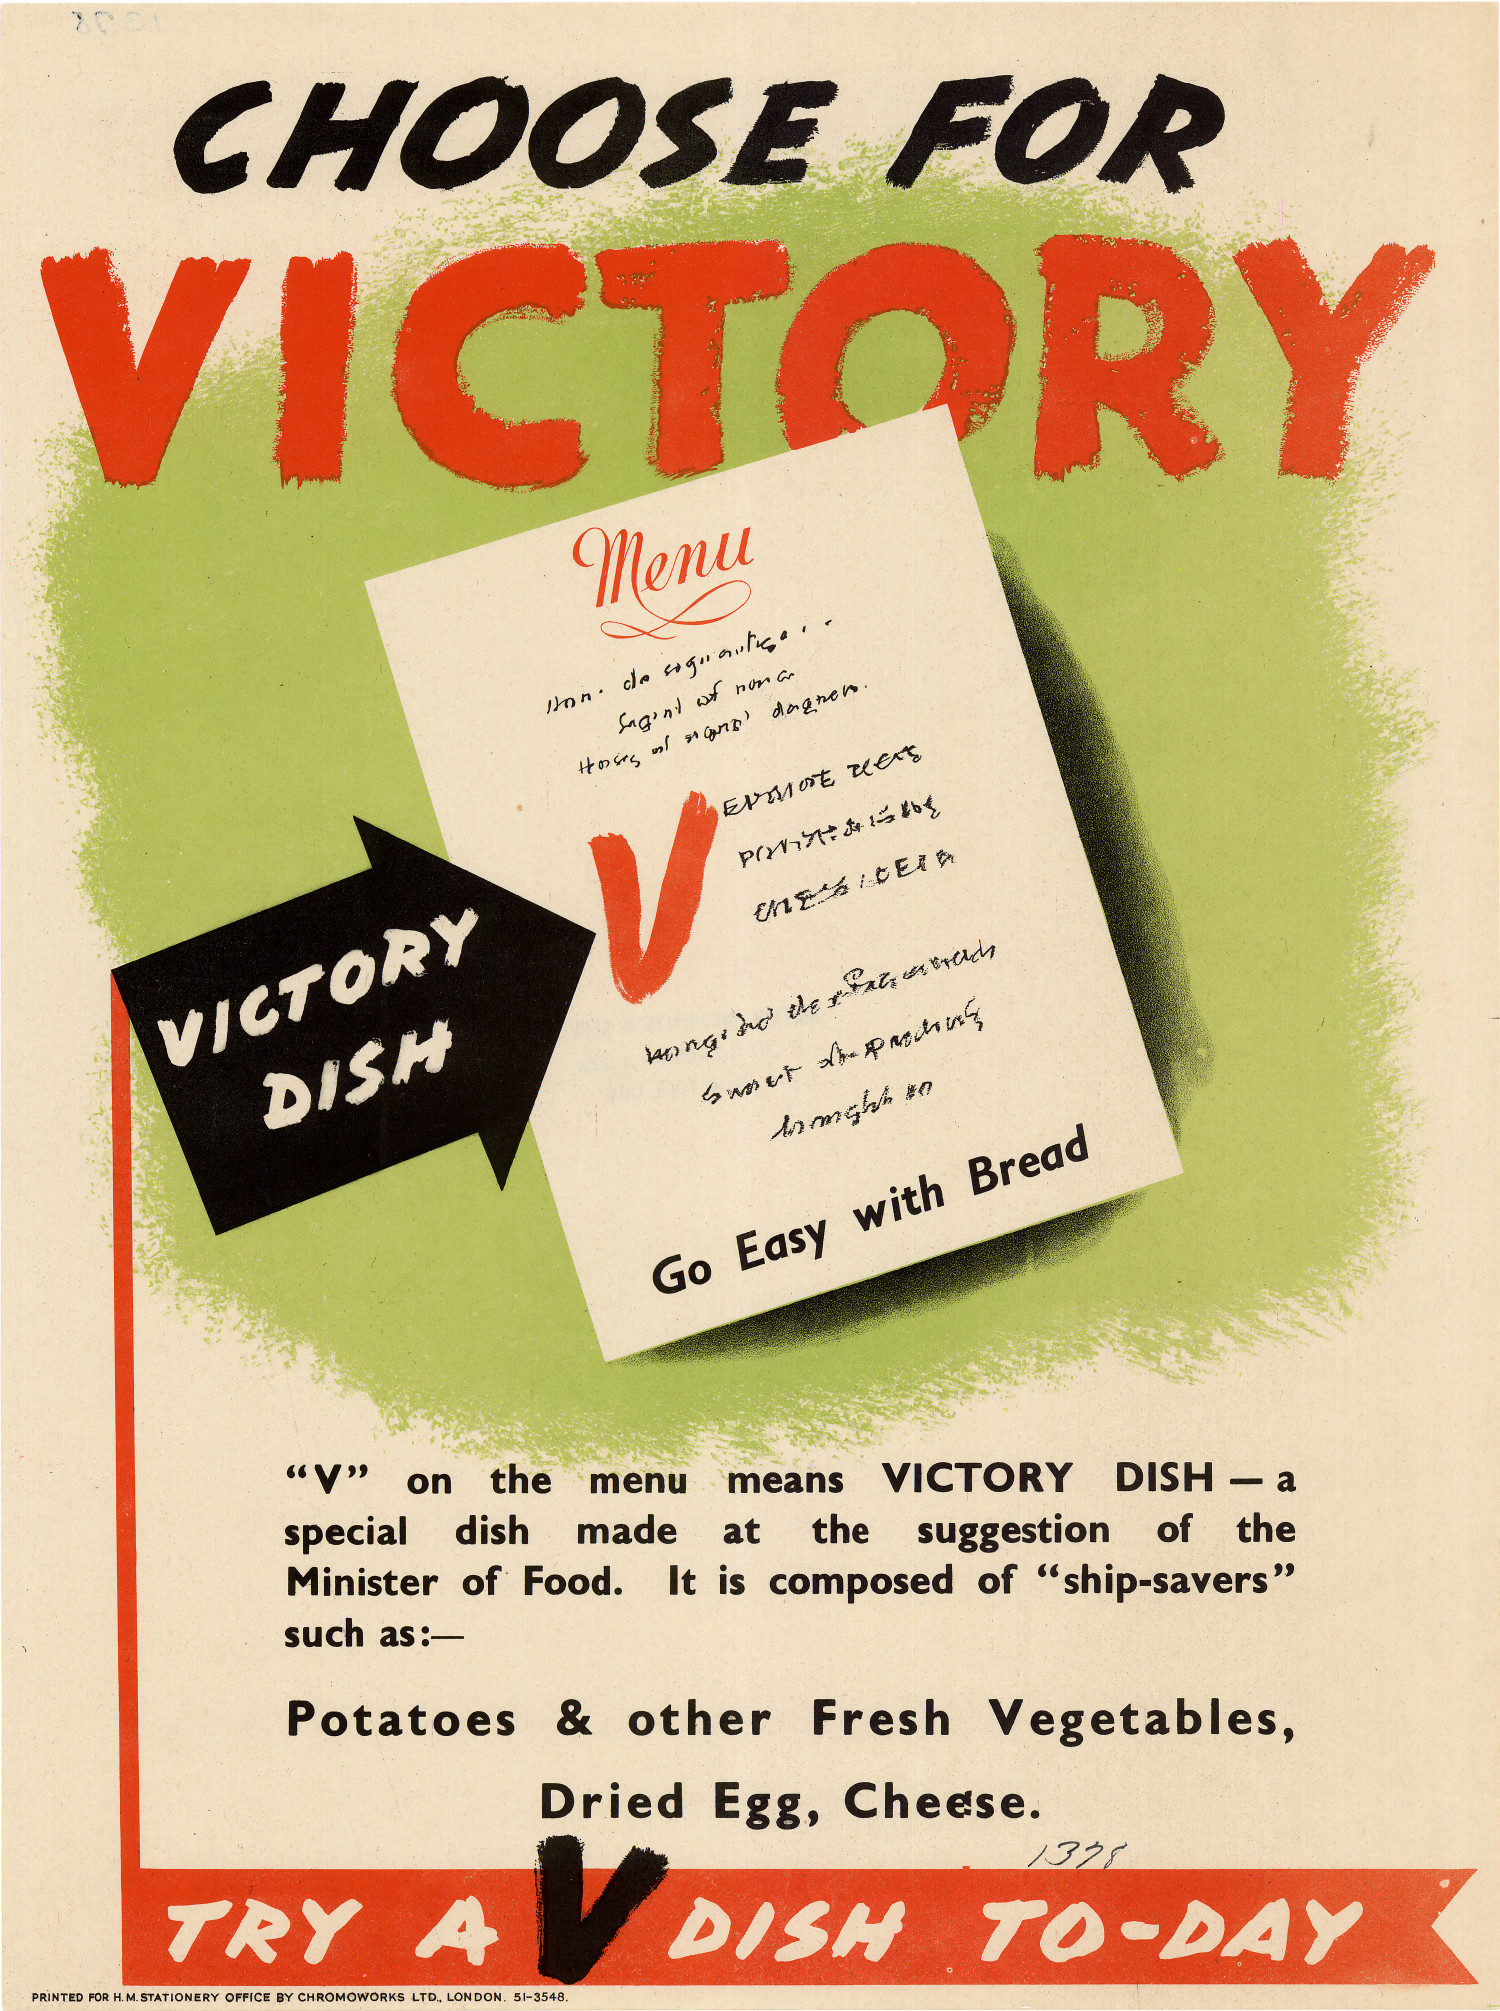 Choose for victory : try a V dish to-day.                                                                                                      [Sequence #]: 1 of 1